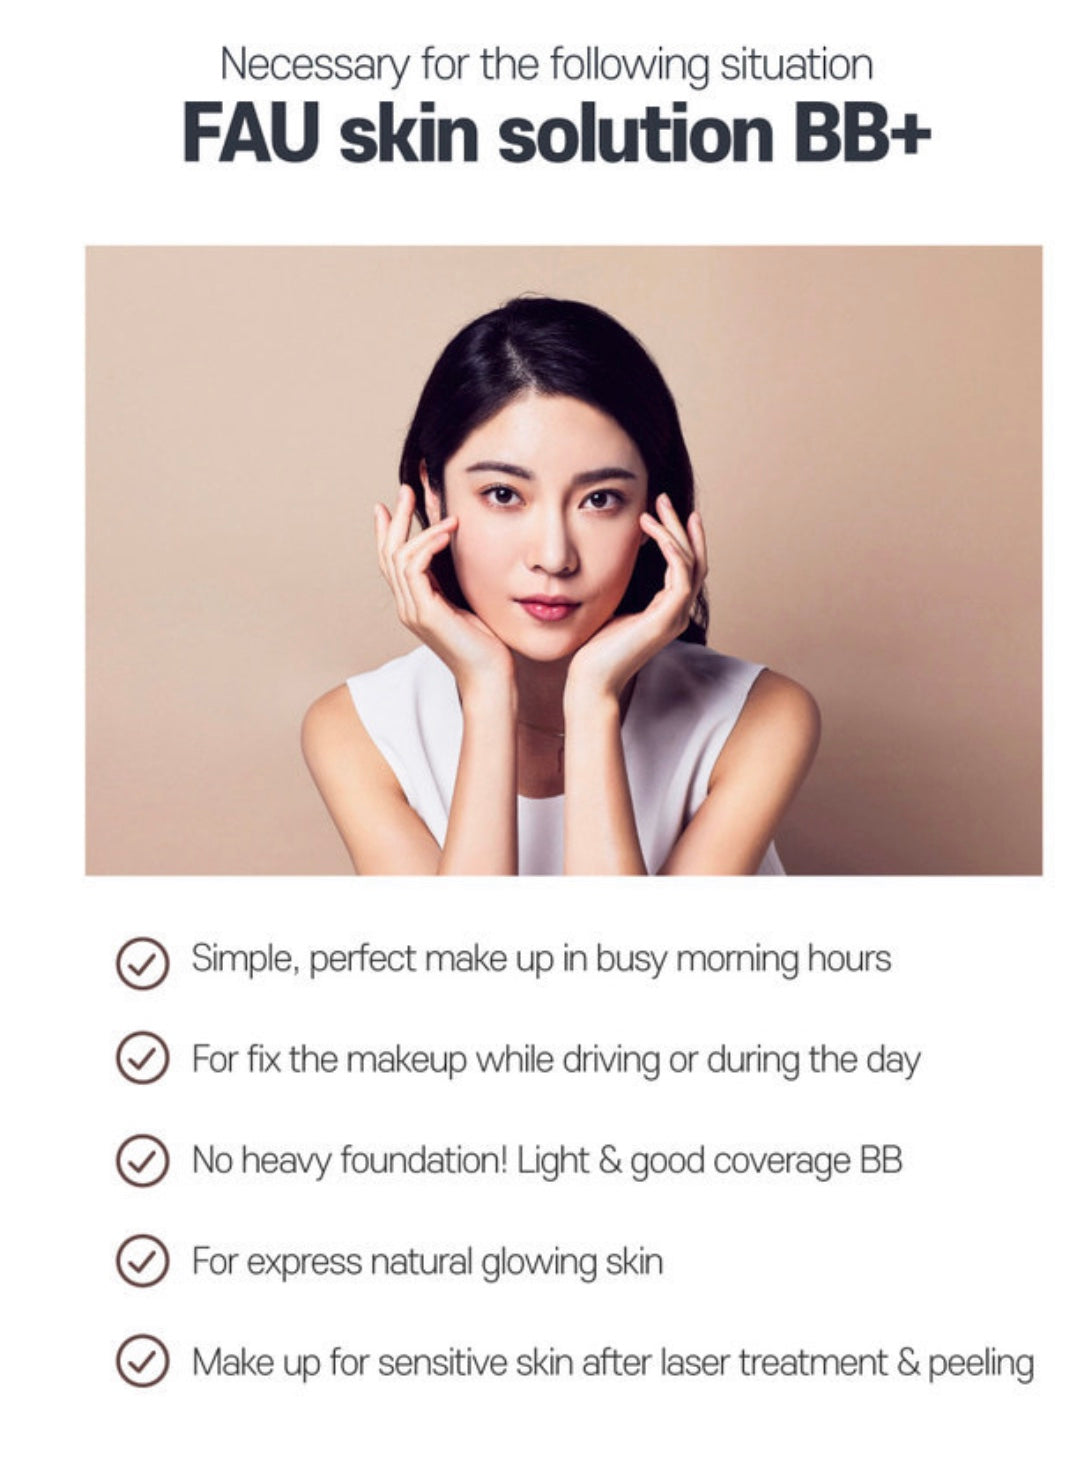 Benefits of FAU Skin Solution BB Plus